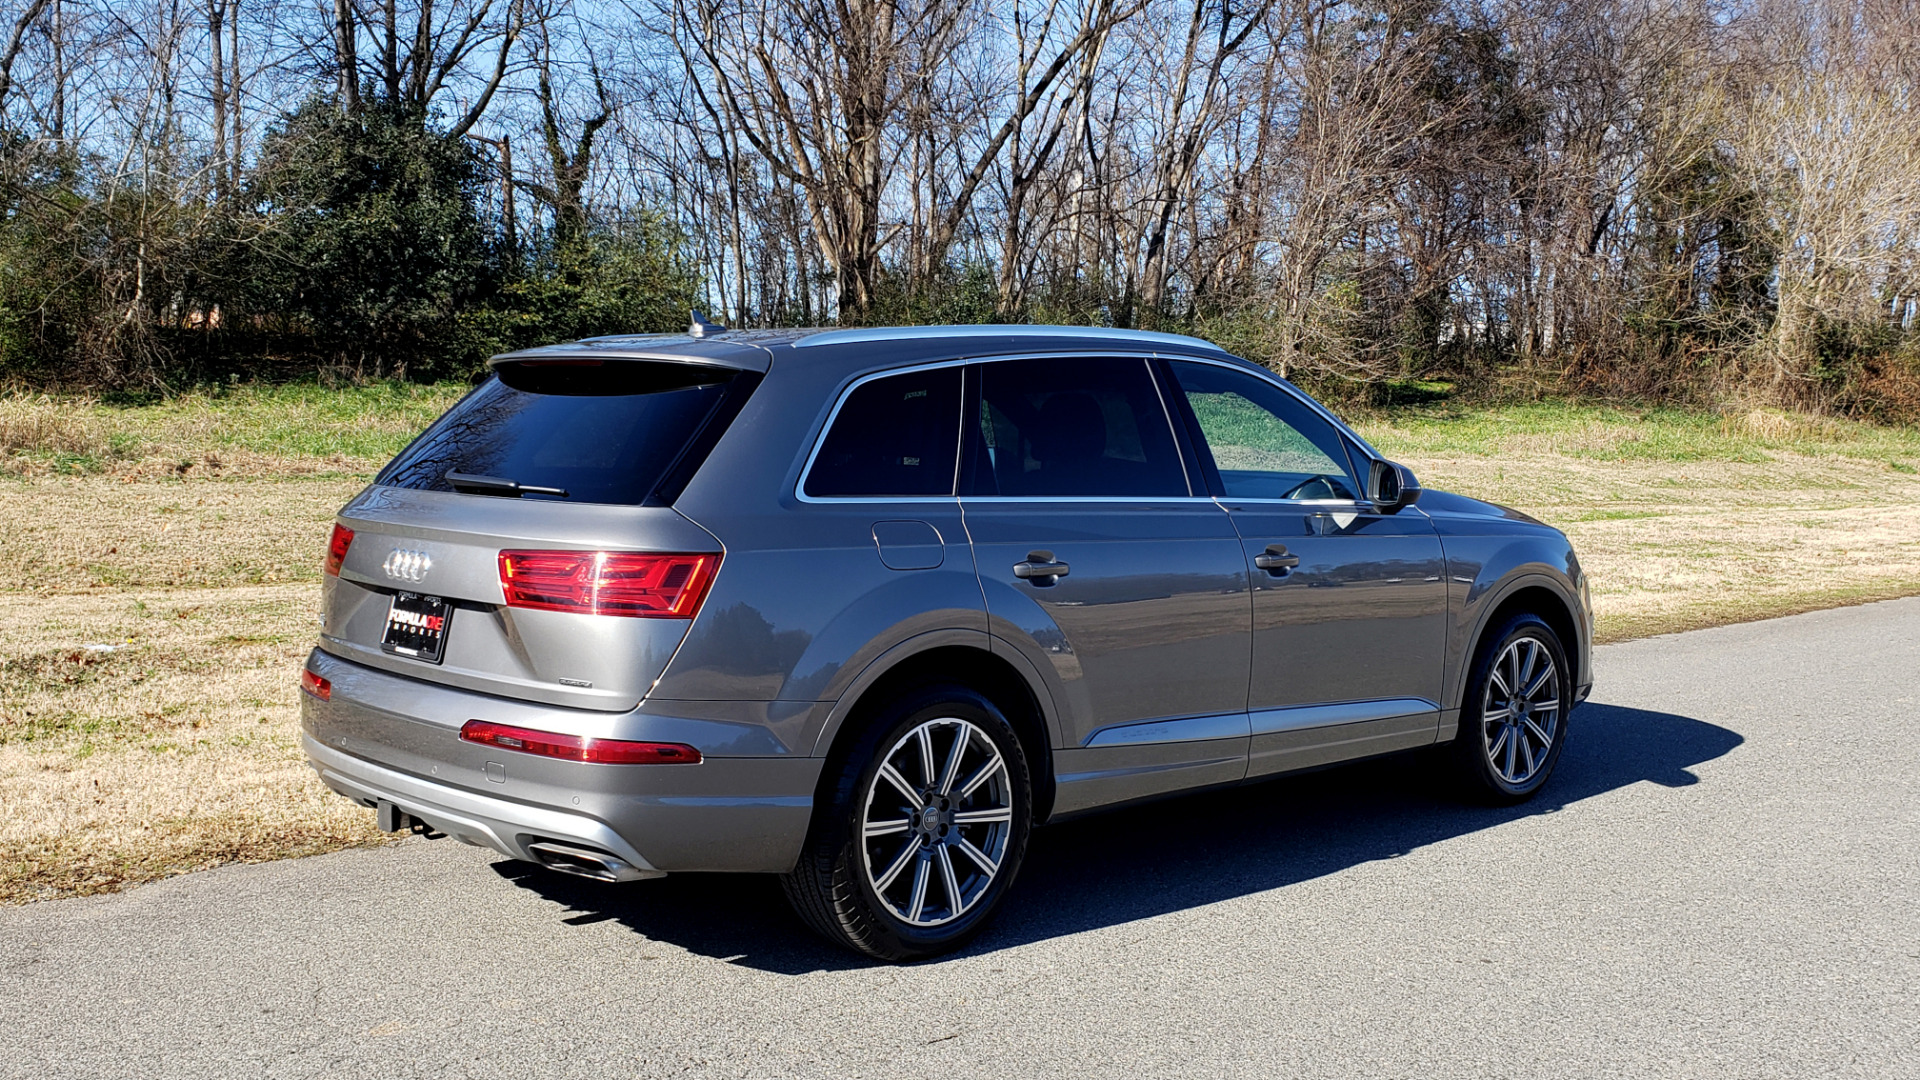 Used 2017 Audi Q7 PREMIUM PLUS / 2.0T TIPTRONIC / NAV / PANO-ROOF / 3-ROW / REARVIEW for sale $33,999 at Formula Imports in Charlotte NC 28227 5